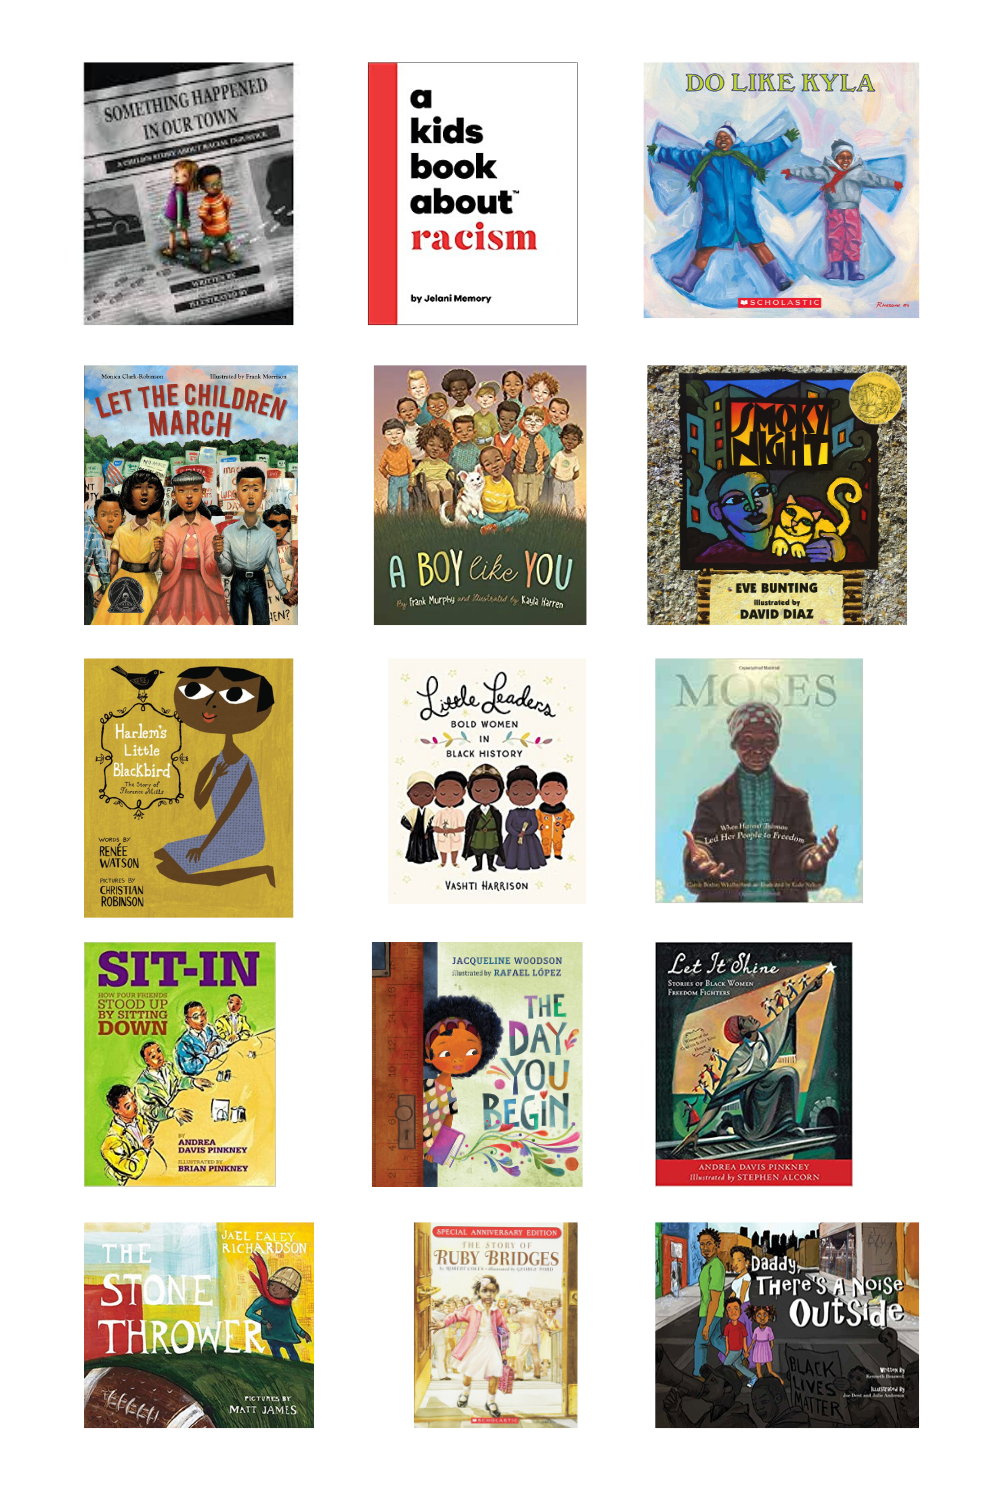 Children's books about race, racism and resistance